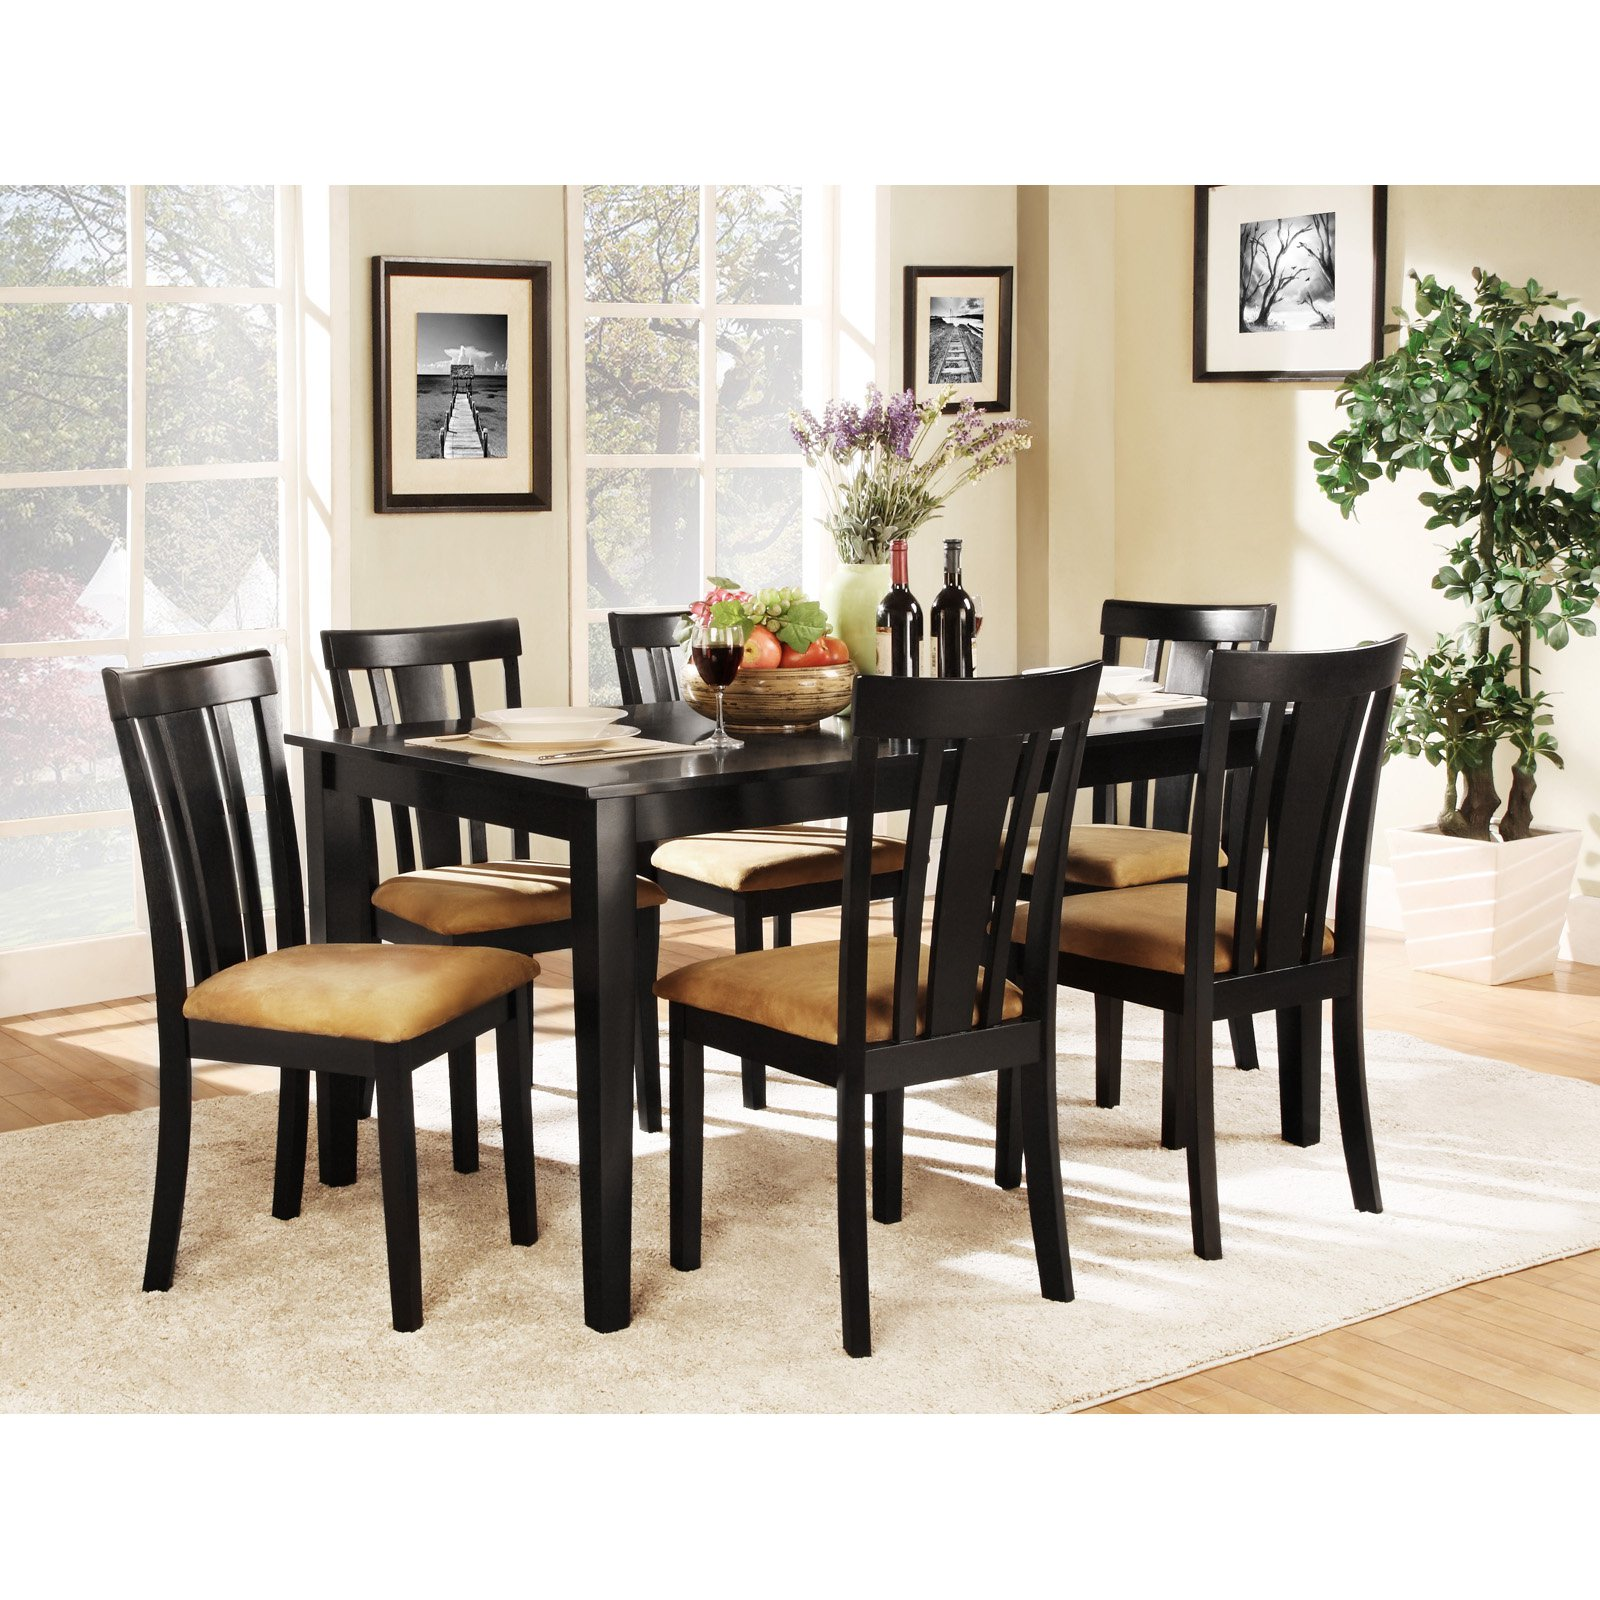 Homelegance Tibalt 7 Piece Rectangle Black Dining Table Set   60 In. With 6  Slat Back Chairs